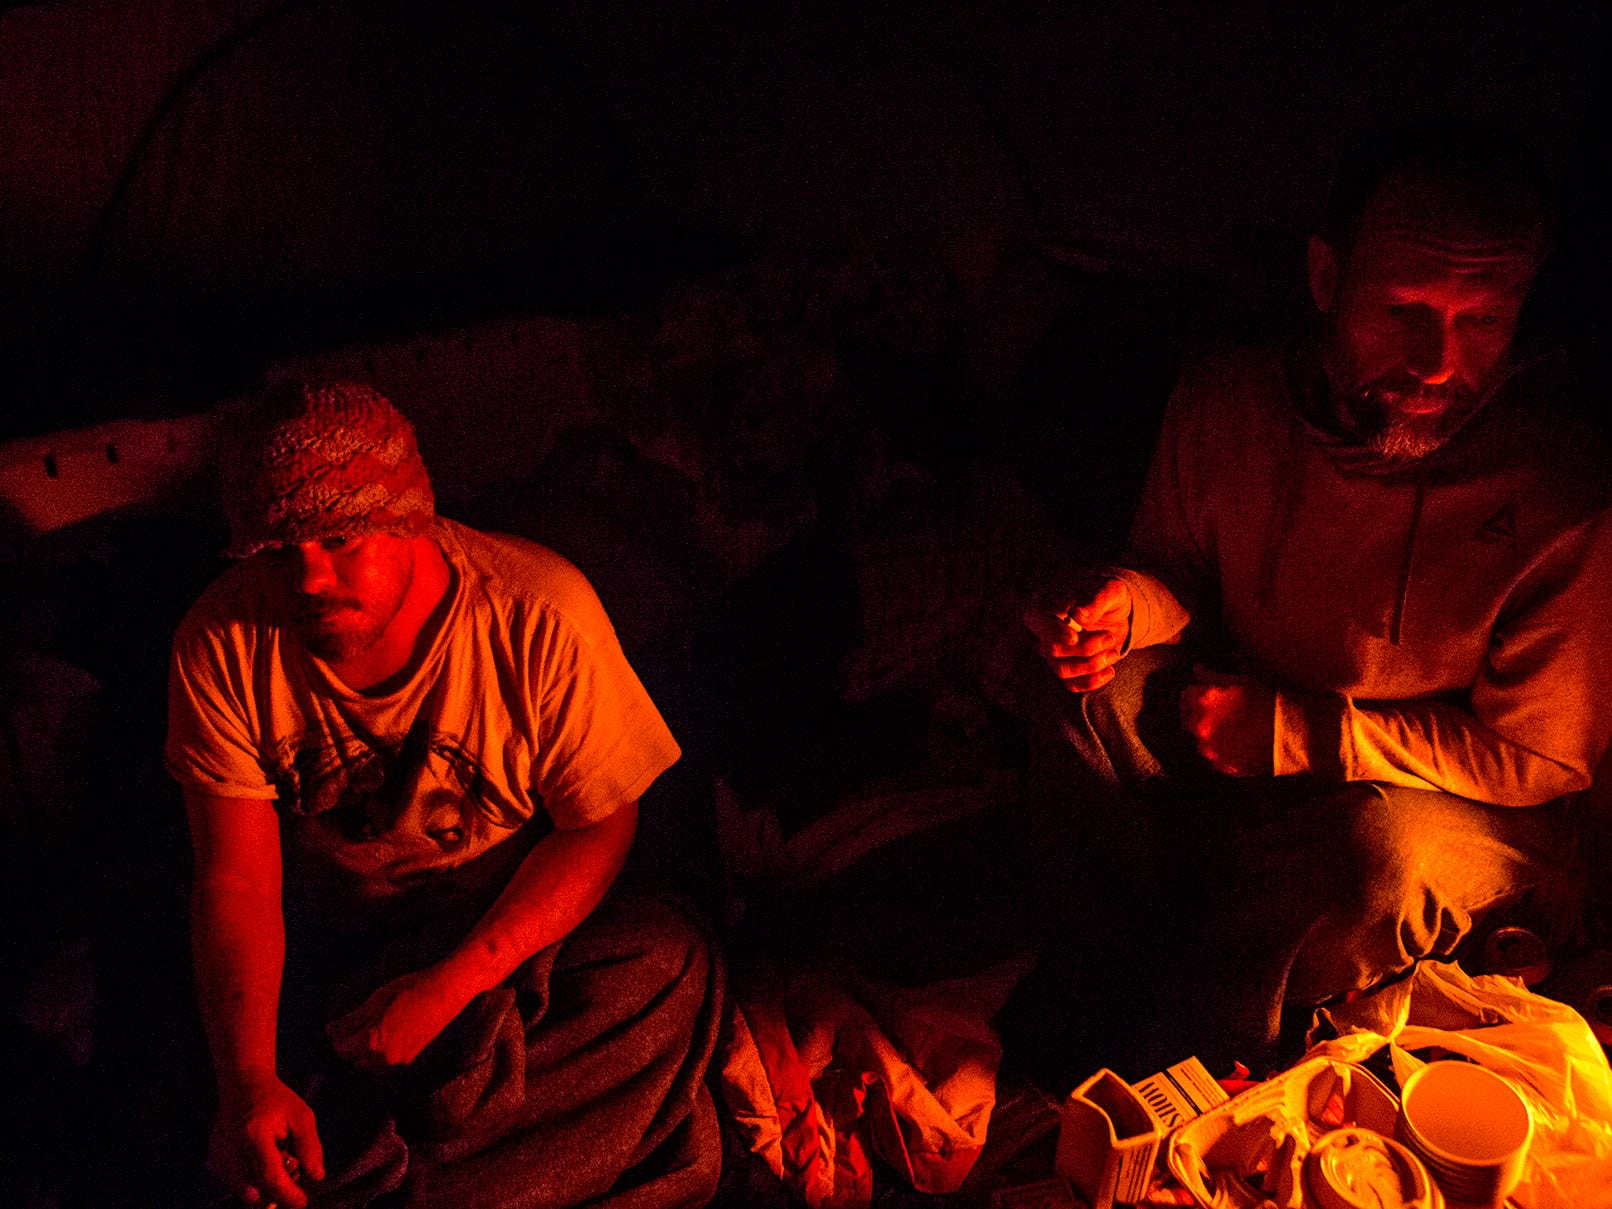 Bob and Justin in their tent, Jan. 30, 2019. Temperatures were below 0 but the two, and their tent-mates all refused to go into warming shelters because they did not want to leave their dogs behind. Instead they hunkered down with sleeping bags and a propane heater running all night to survive the cold.